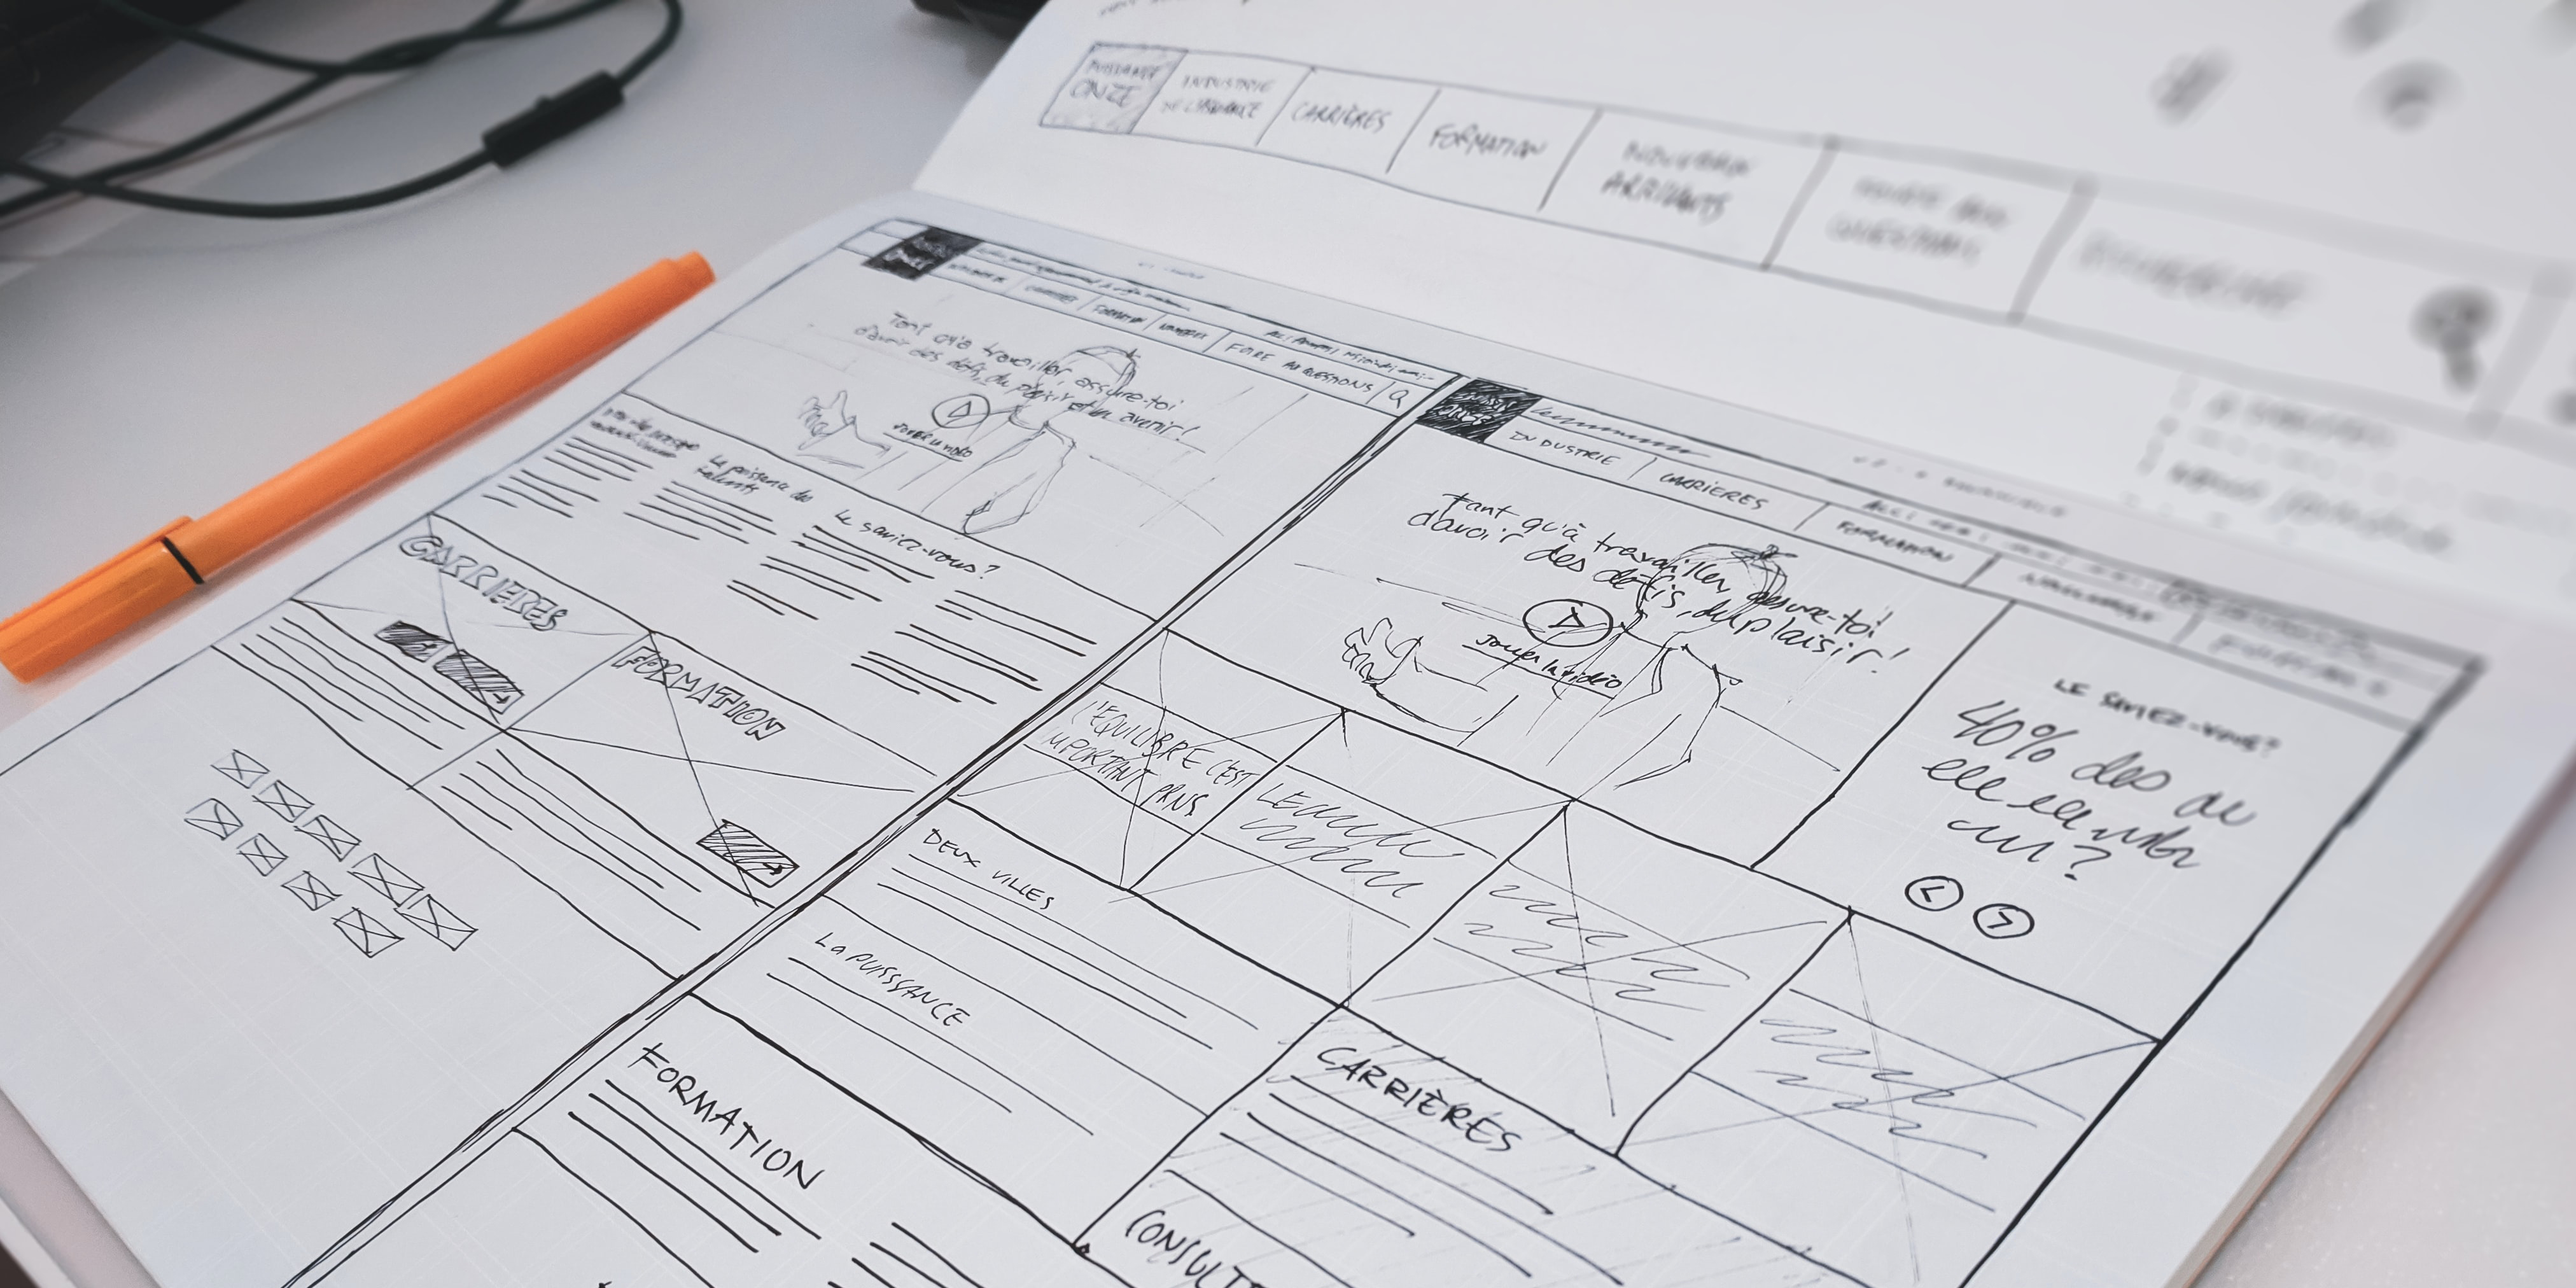 A layout plan for a web page.